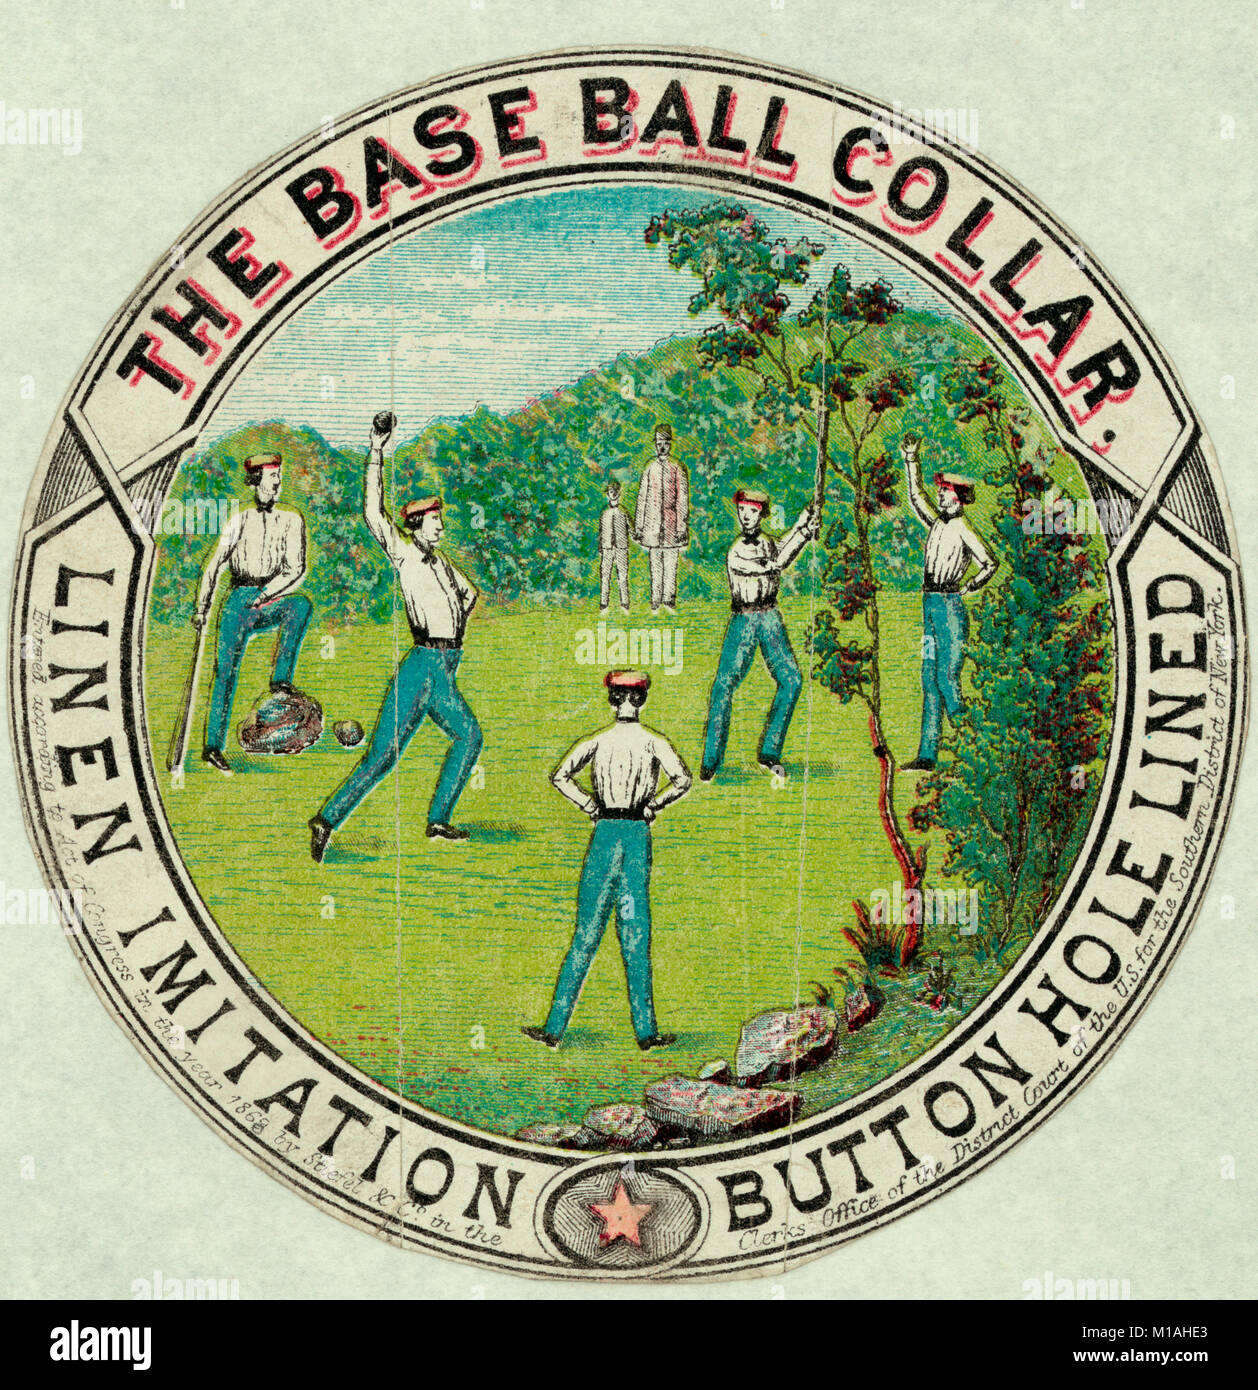 The base ball collar - Men wearing uniforms with collars during baseball game. Advertisement, circa 1869 - Stock Image